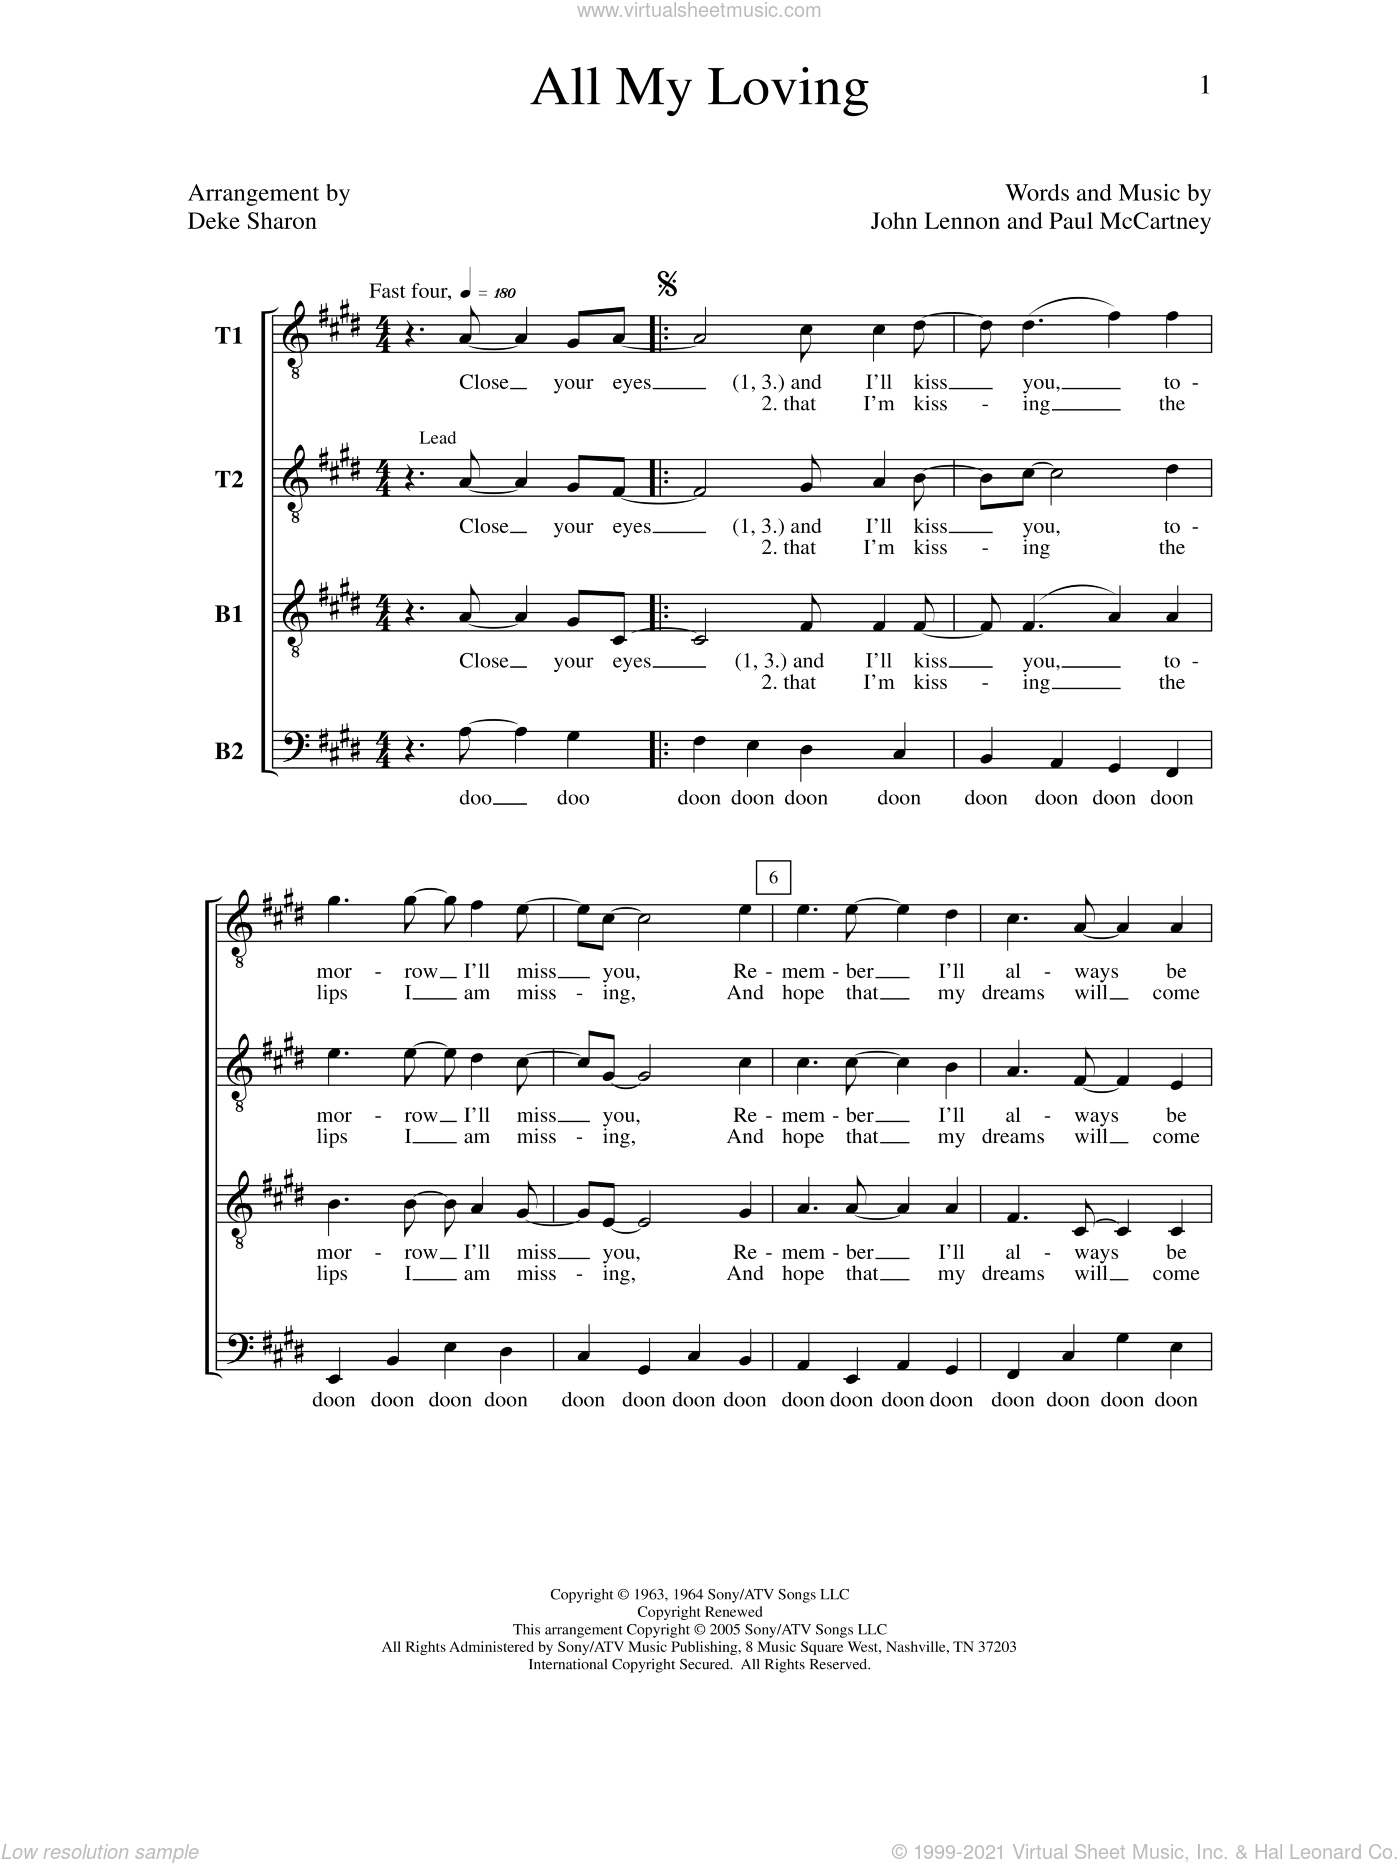 All My Loving sheet music for choir by Deke Sharon, Anne Raugh, John Lennon, Paul McCartney and The Beatles, intermediate. Score Image Preview.